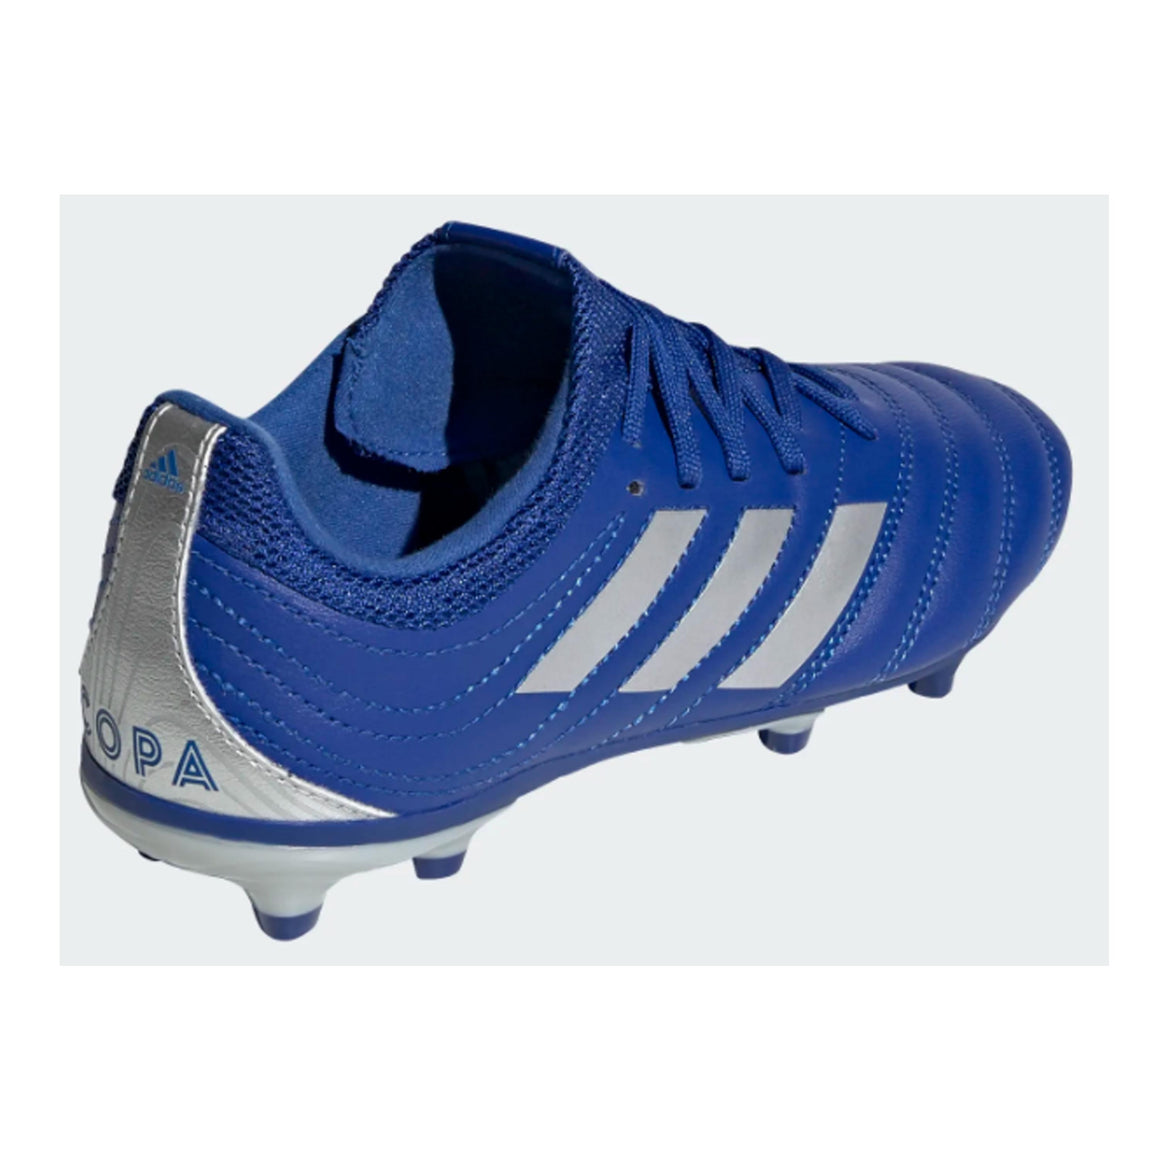 Copa 20.3 Firm Ground Boots Kids in Royal